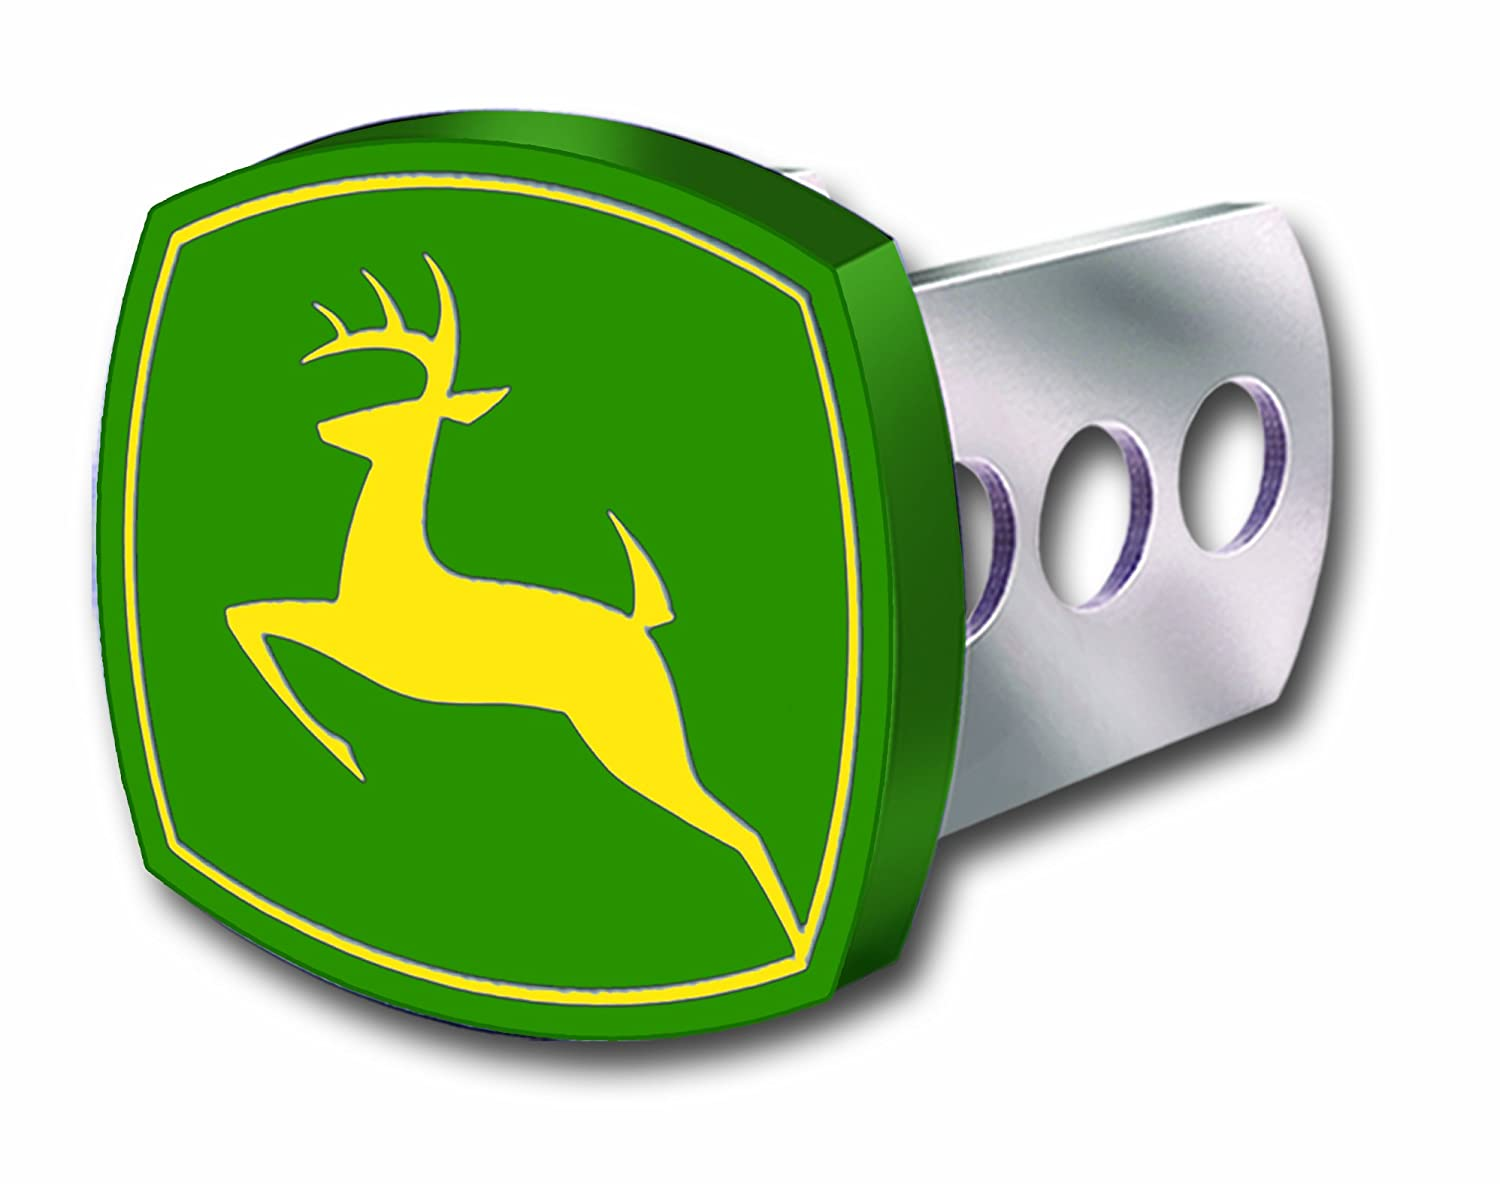 Plasticolor 002232R01 Full Color John Deere Hitch Cover